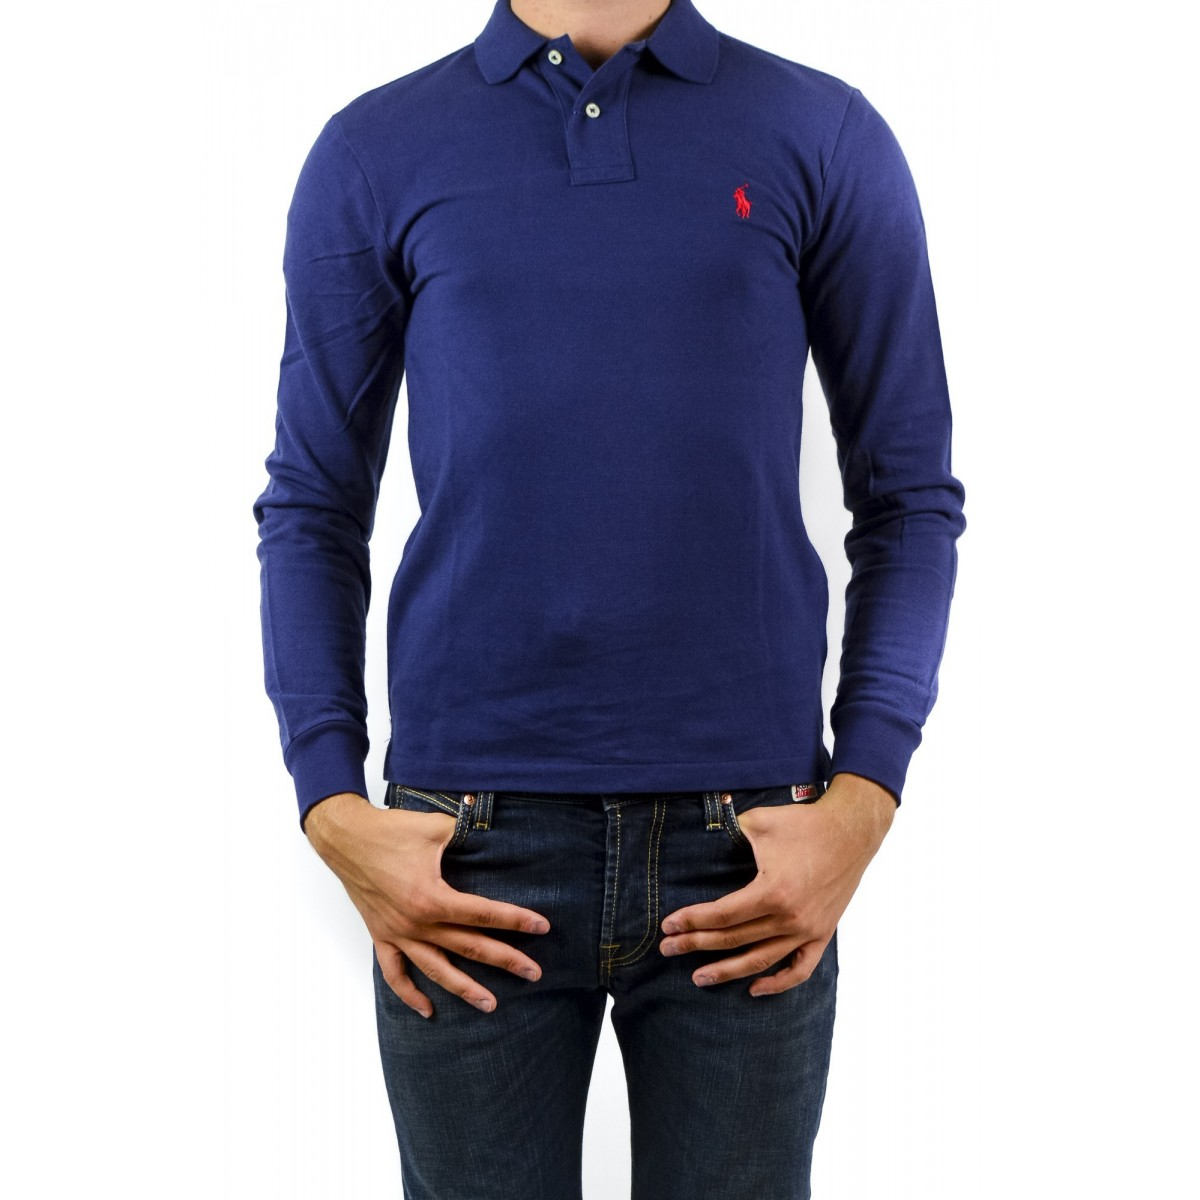 Long-Sleeves Polo Ralph Lauren Man - A12Kkcslc8312 A413B - blu navy